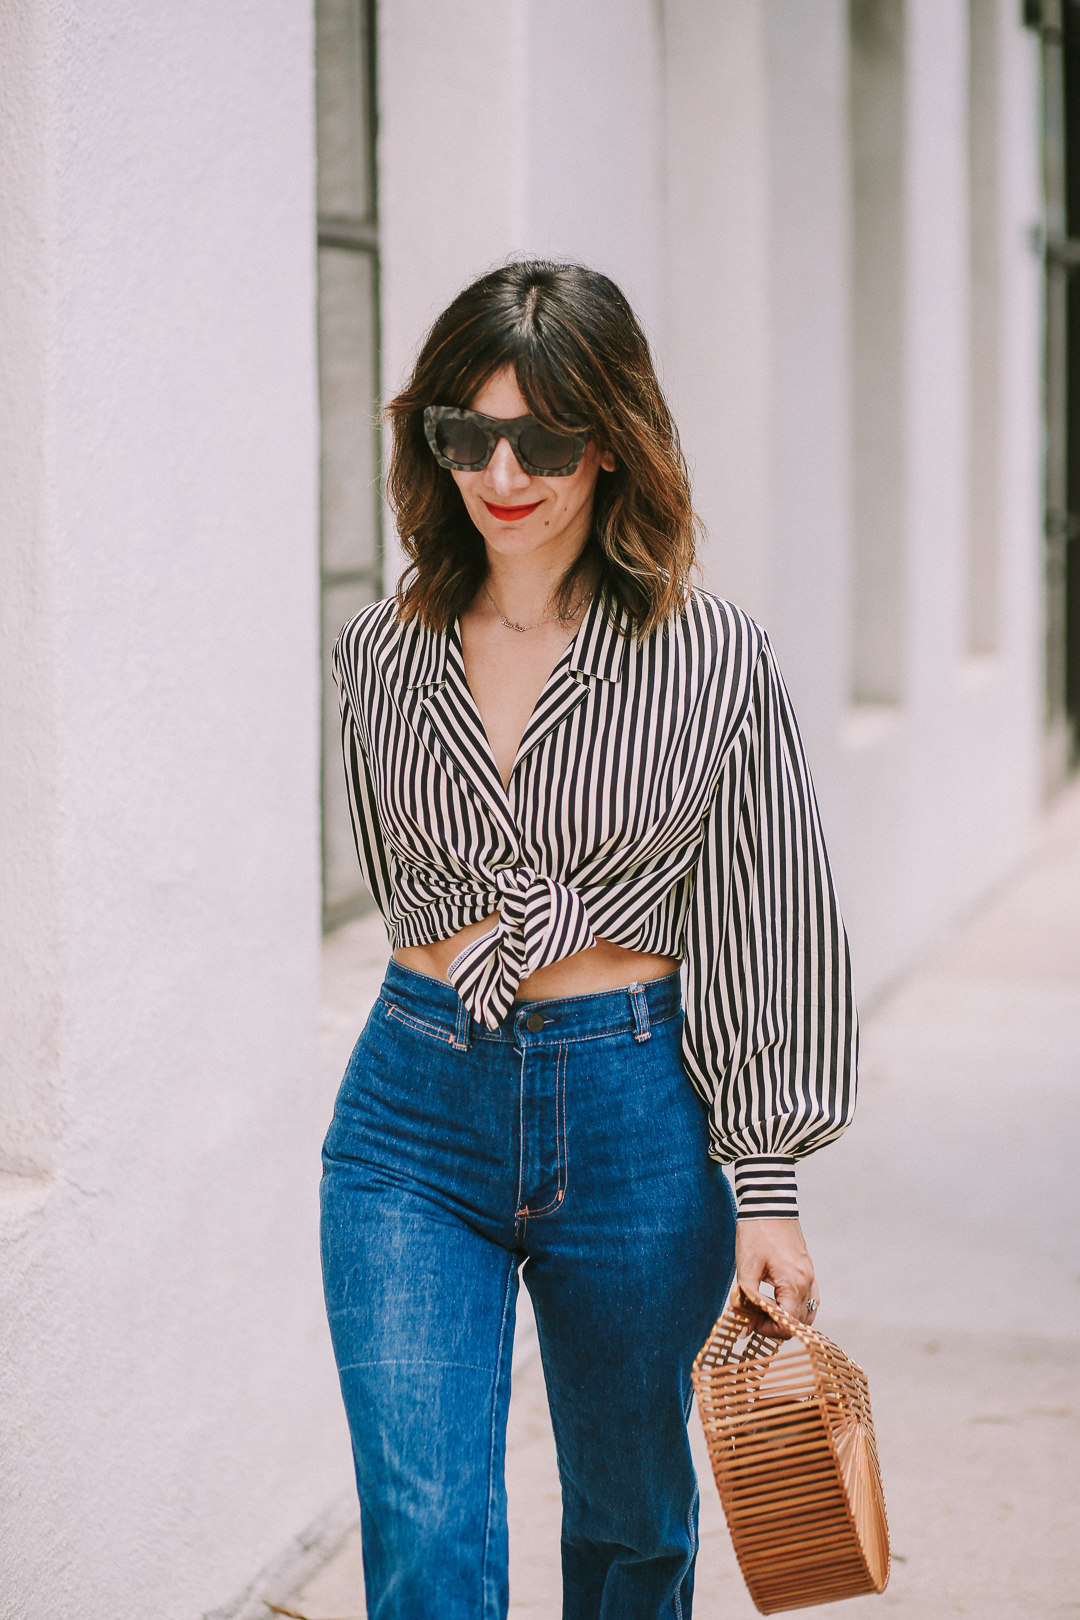 how to style a striped shirt casually